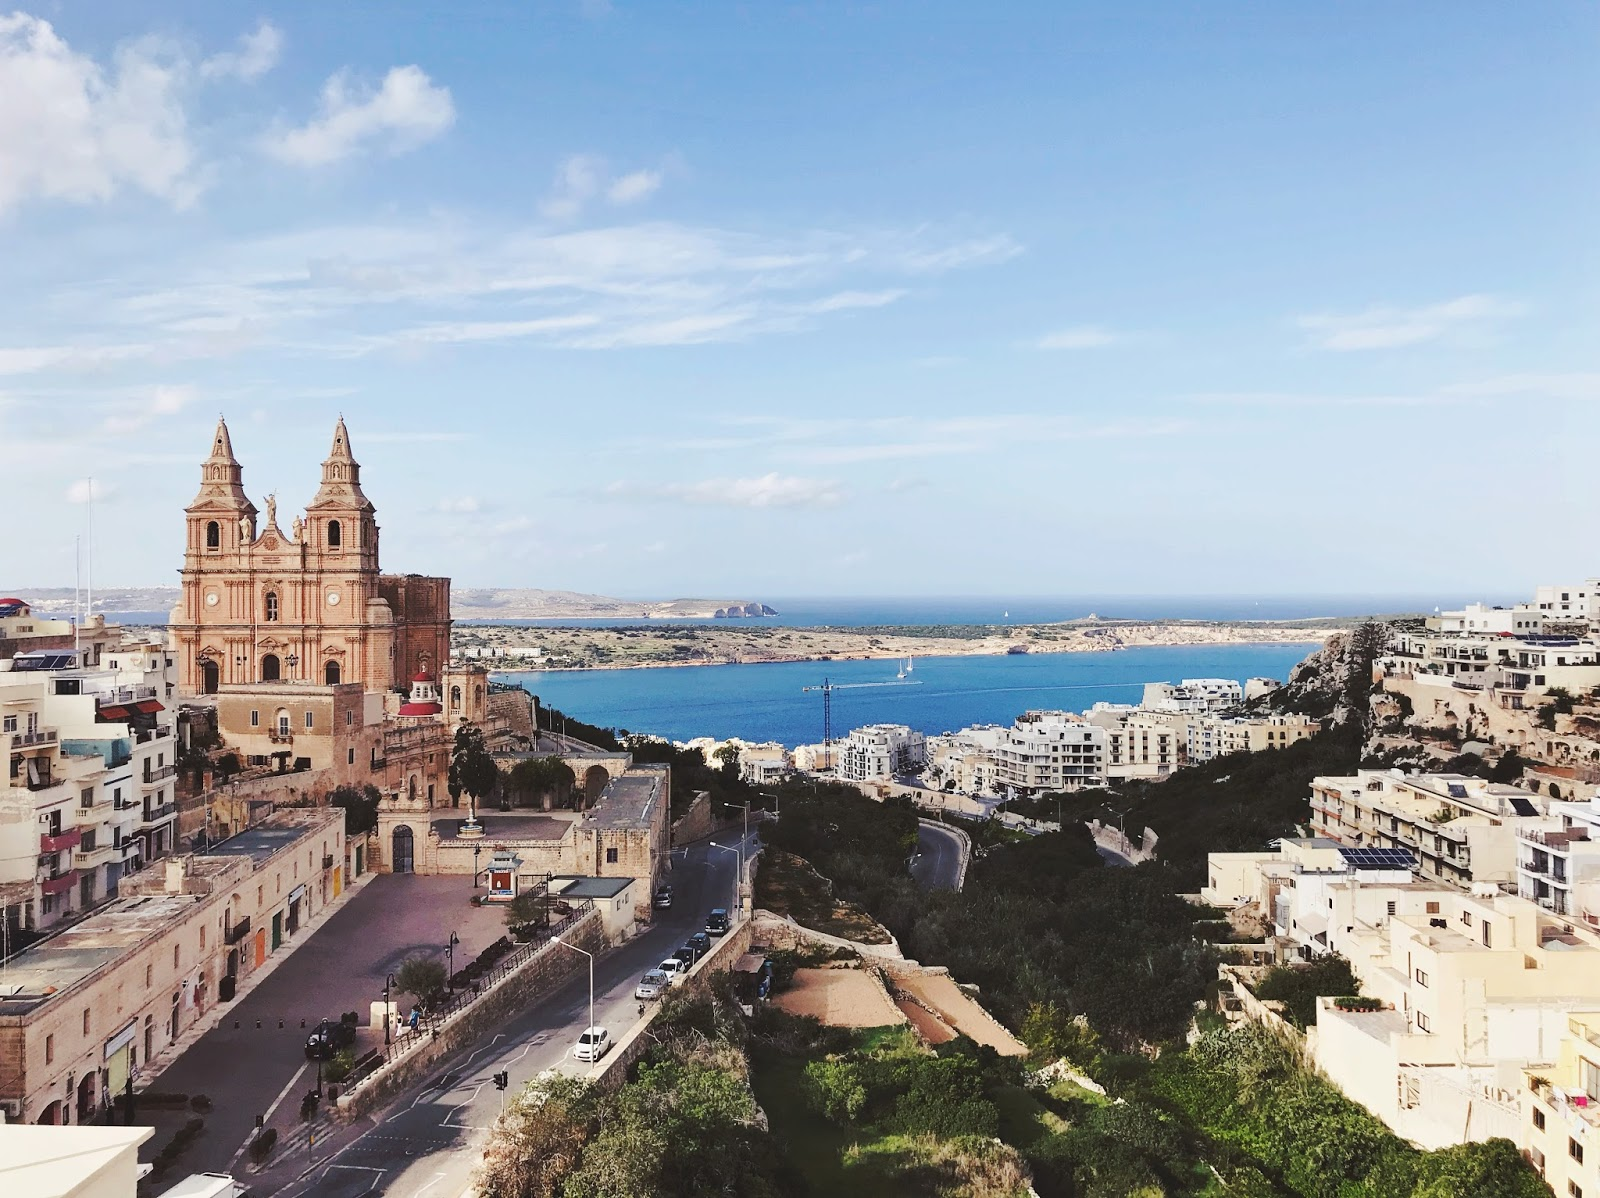 View of Malta Island